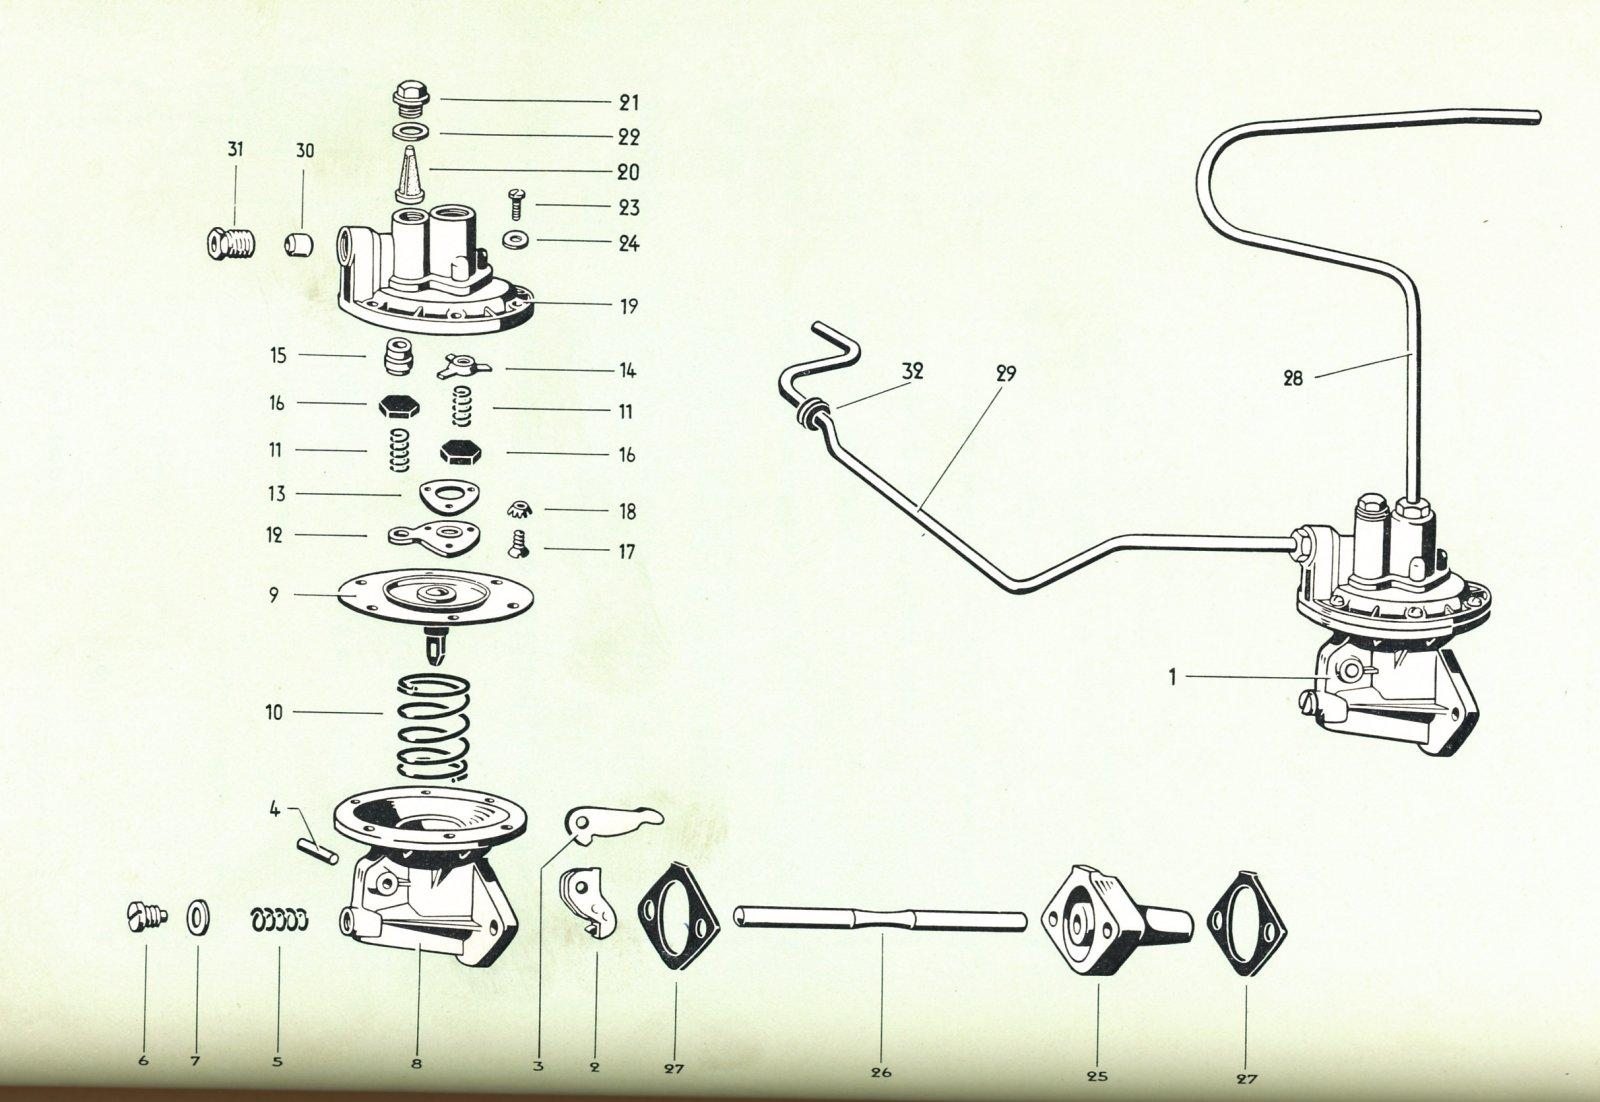 Late 36hp fuel pump diagram from VW Bus parts book